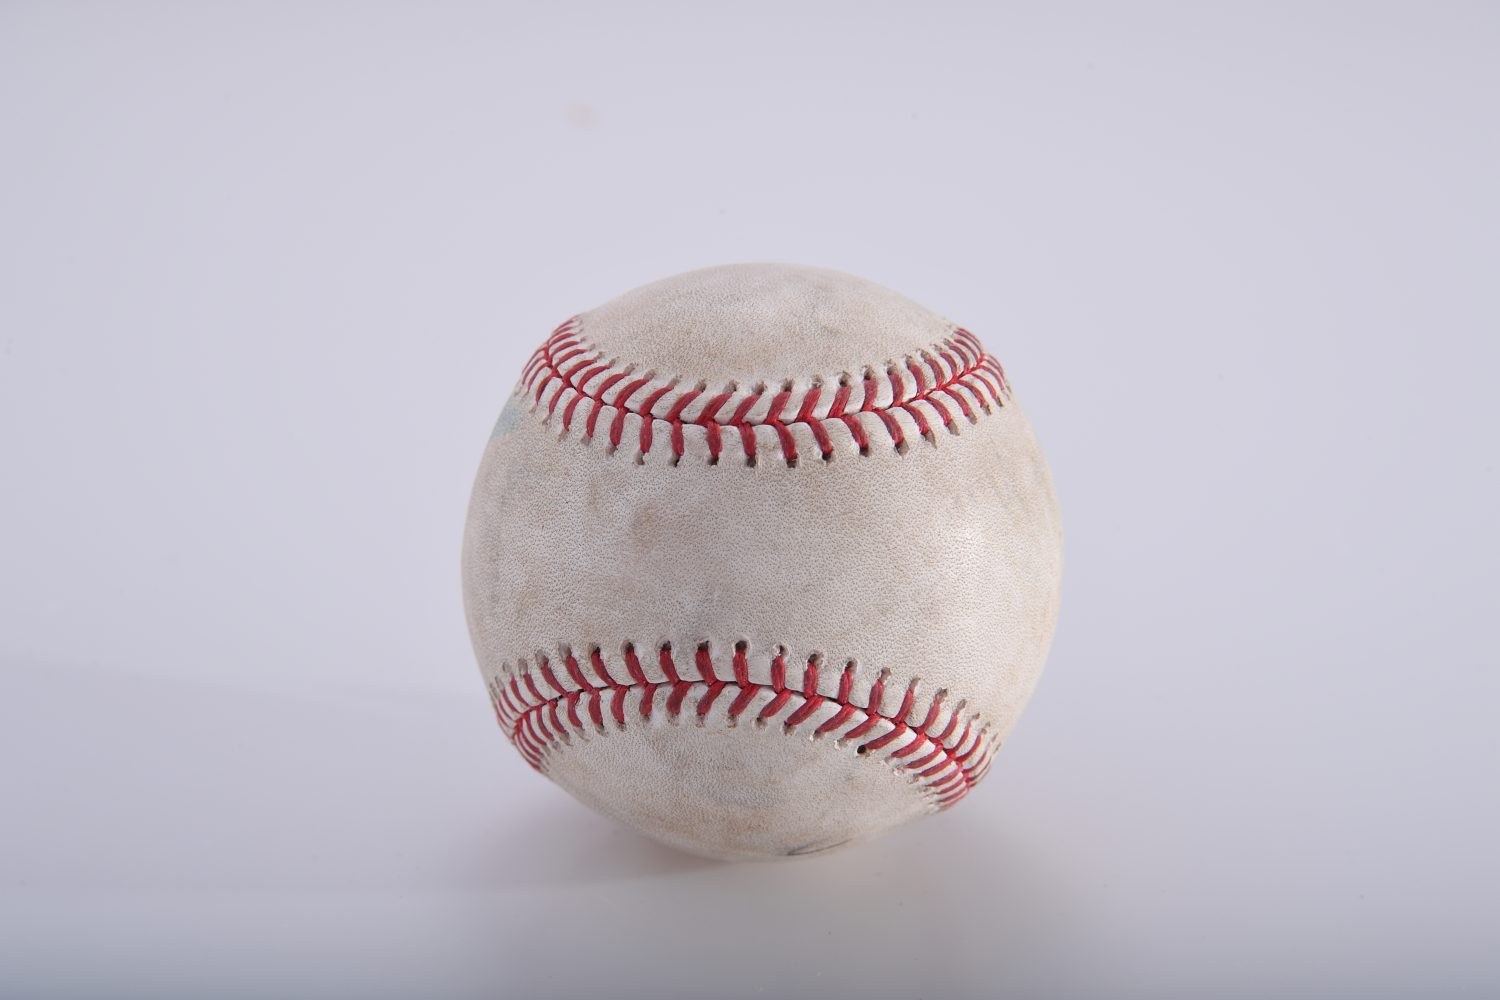 Game-Used Ball from Marcus Stroman's Debut with the Mets